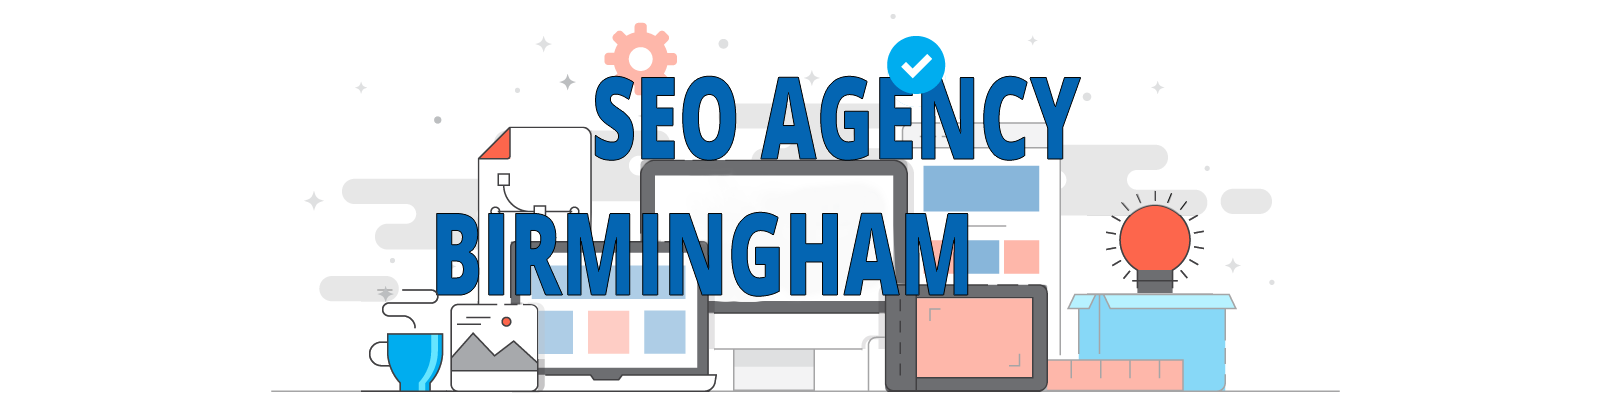 seo agency in birmingham: increase your business ROI